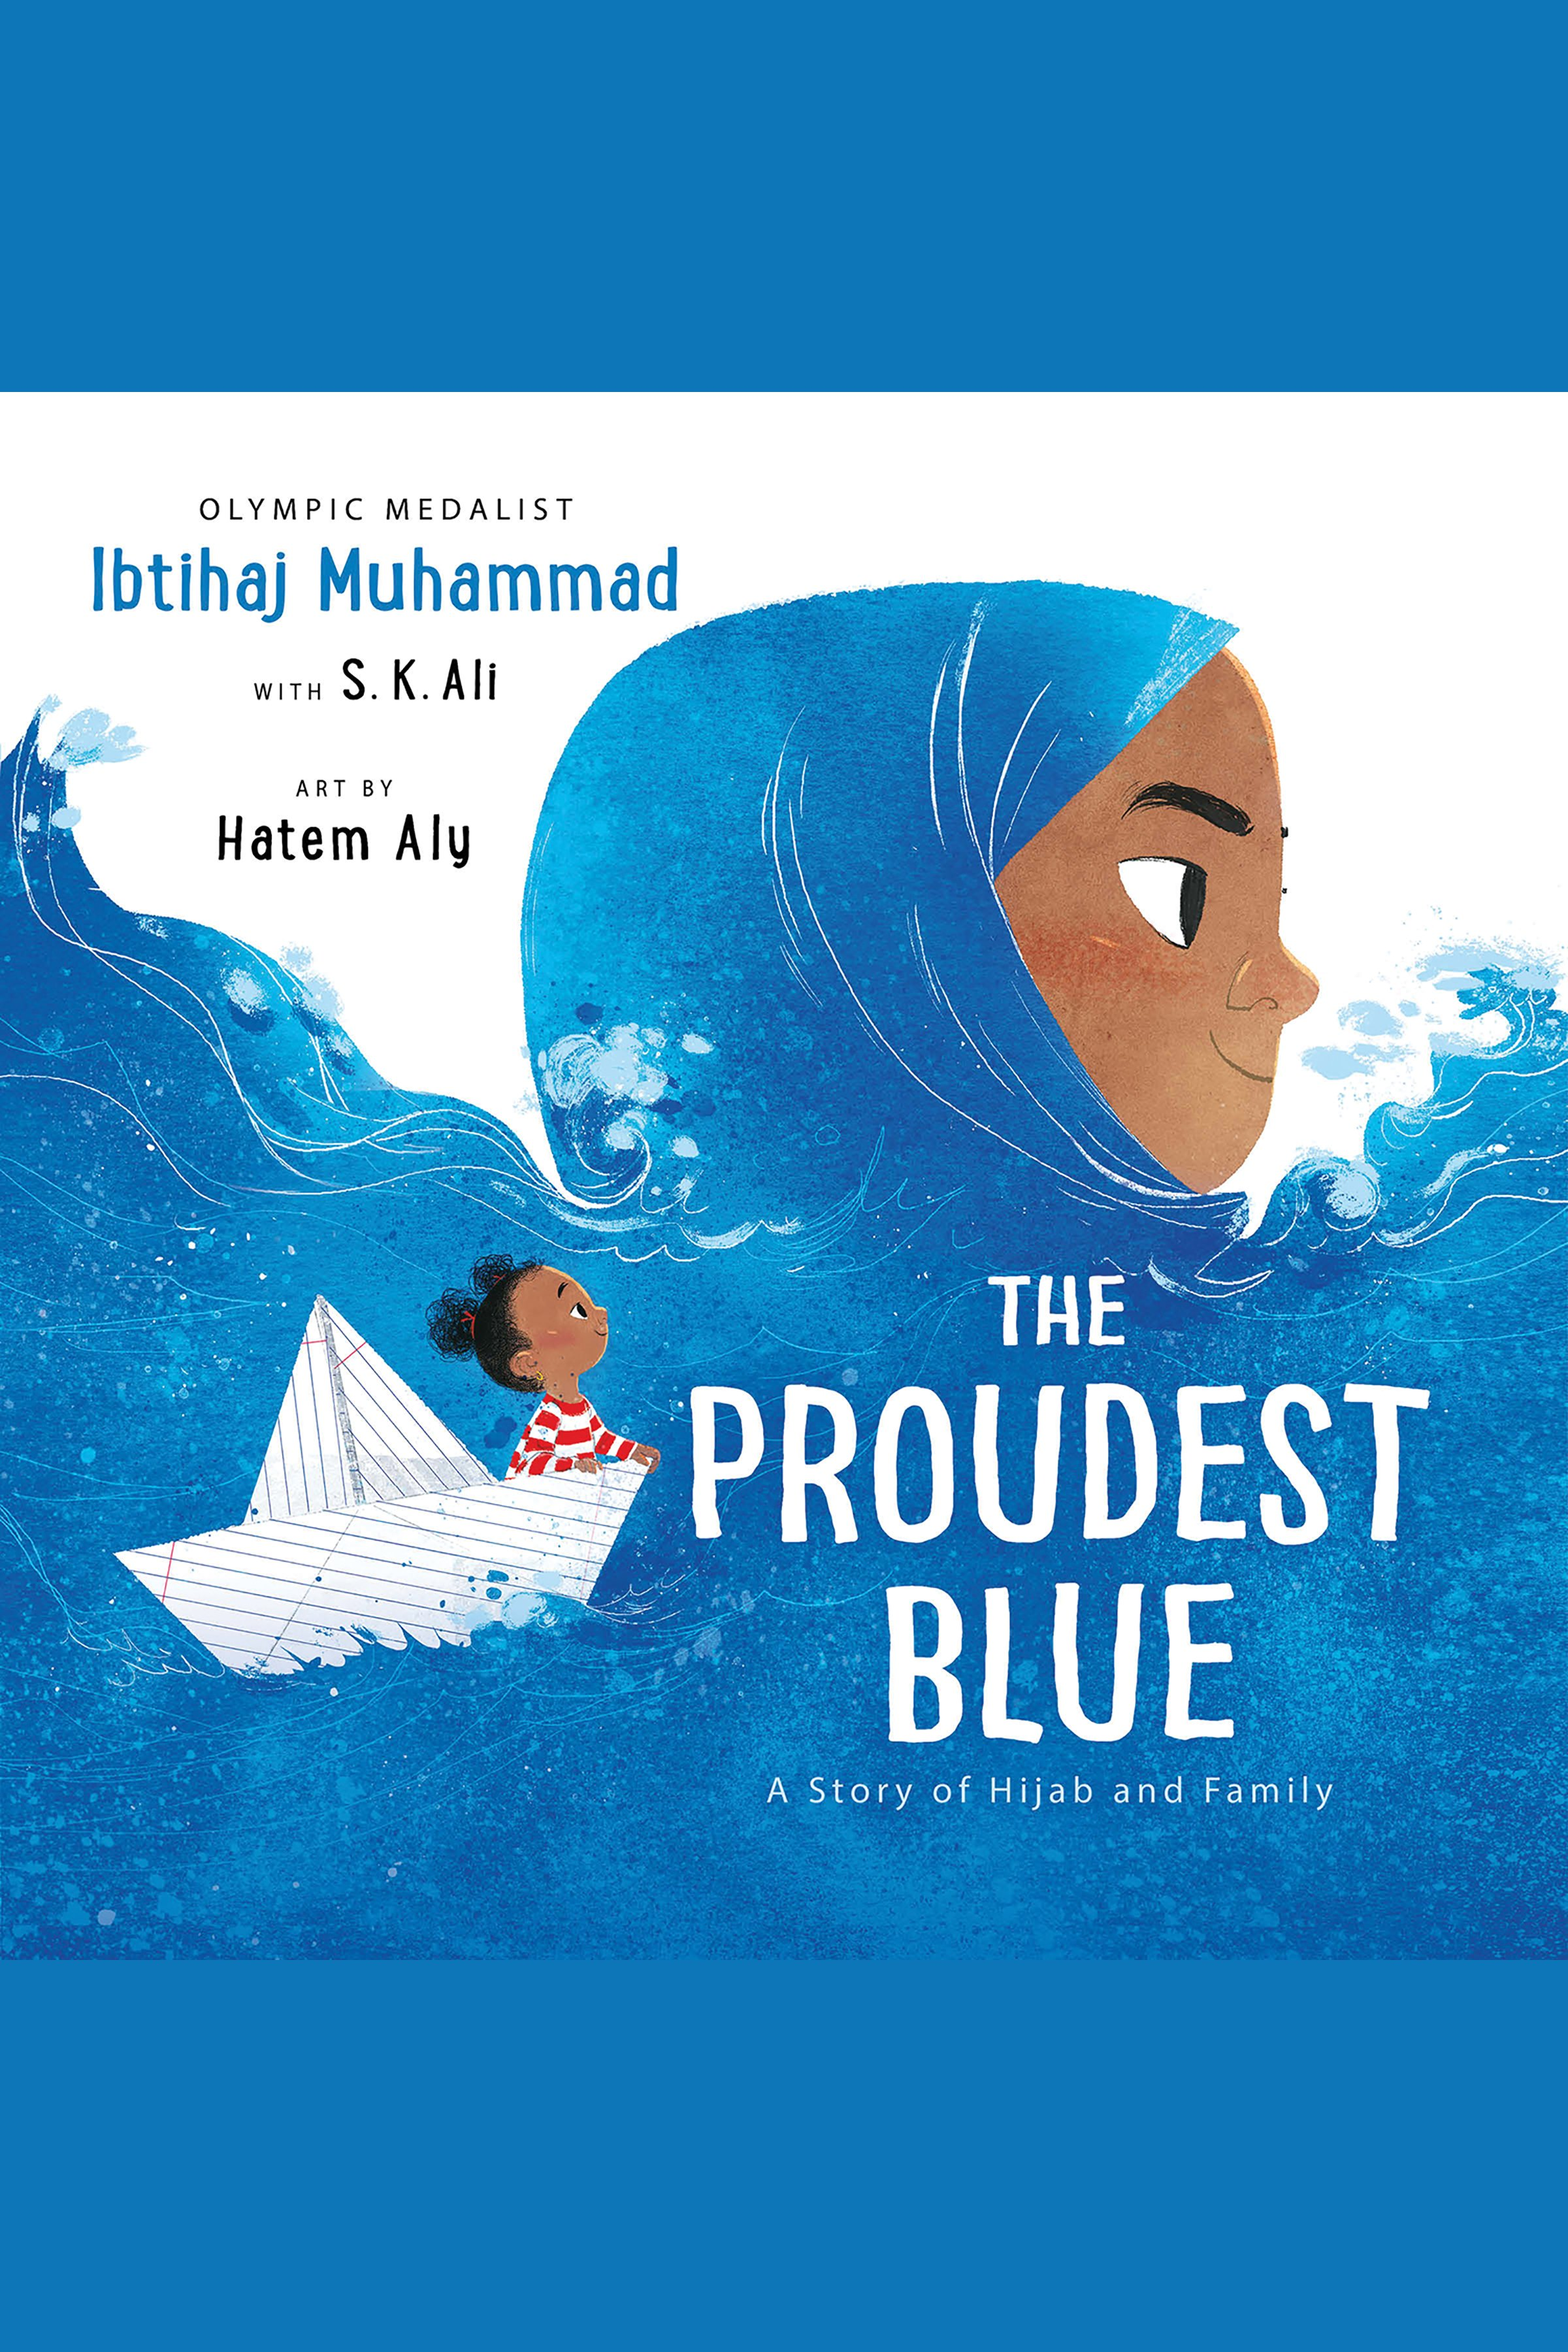 The Proudest Blue cover image